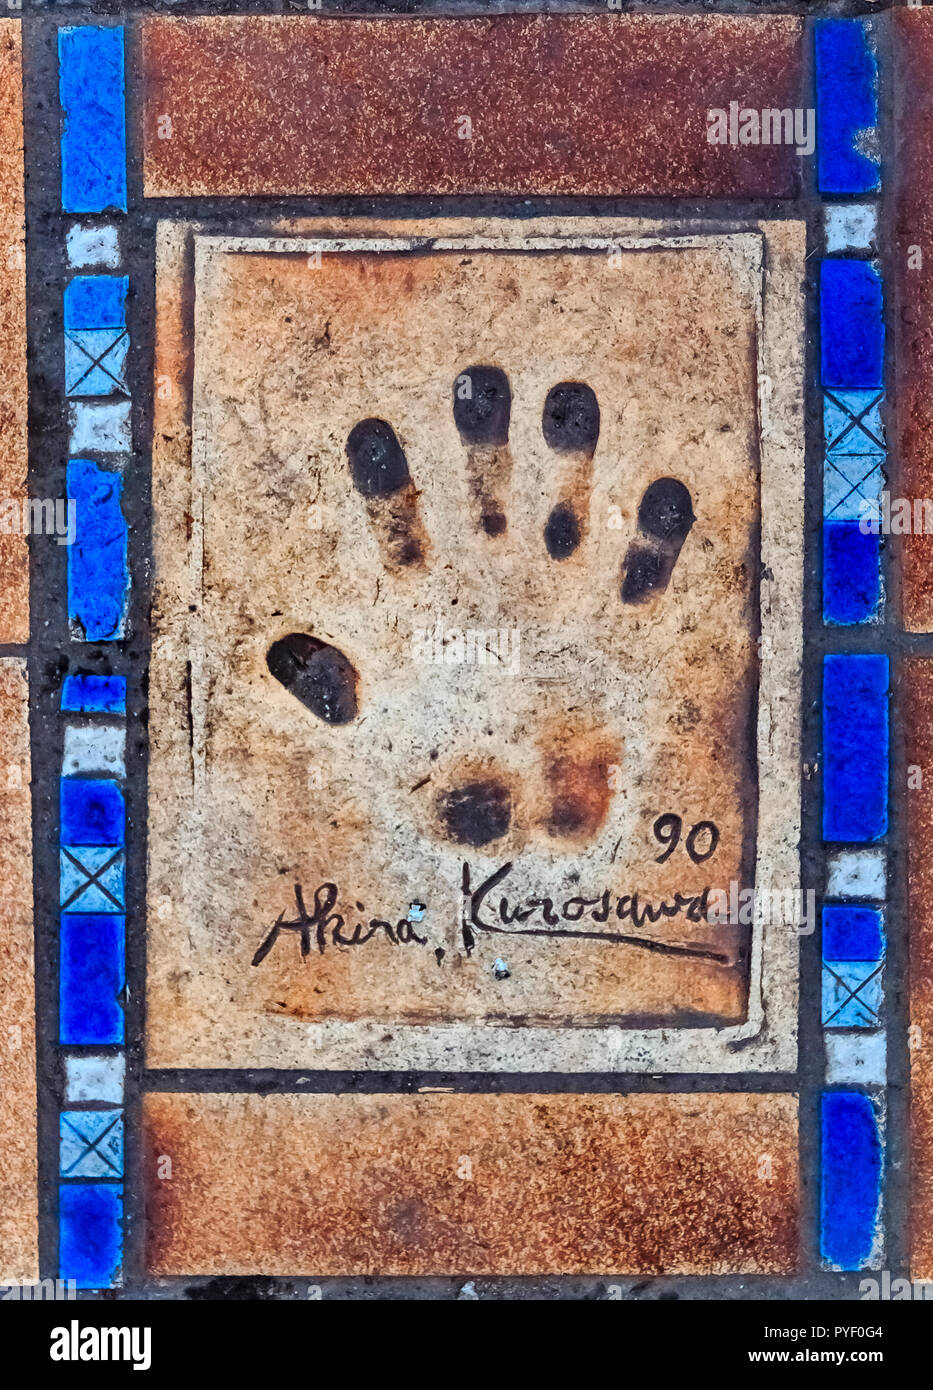 Cannes, France - October 18, 2013: Hand print of Akira Kurosawa on the Cannes Walk Of Fame Stock Photo